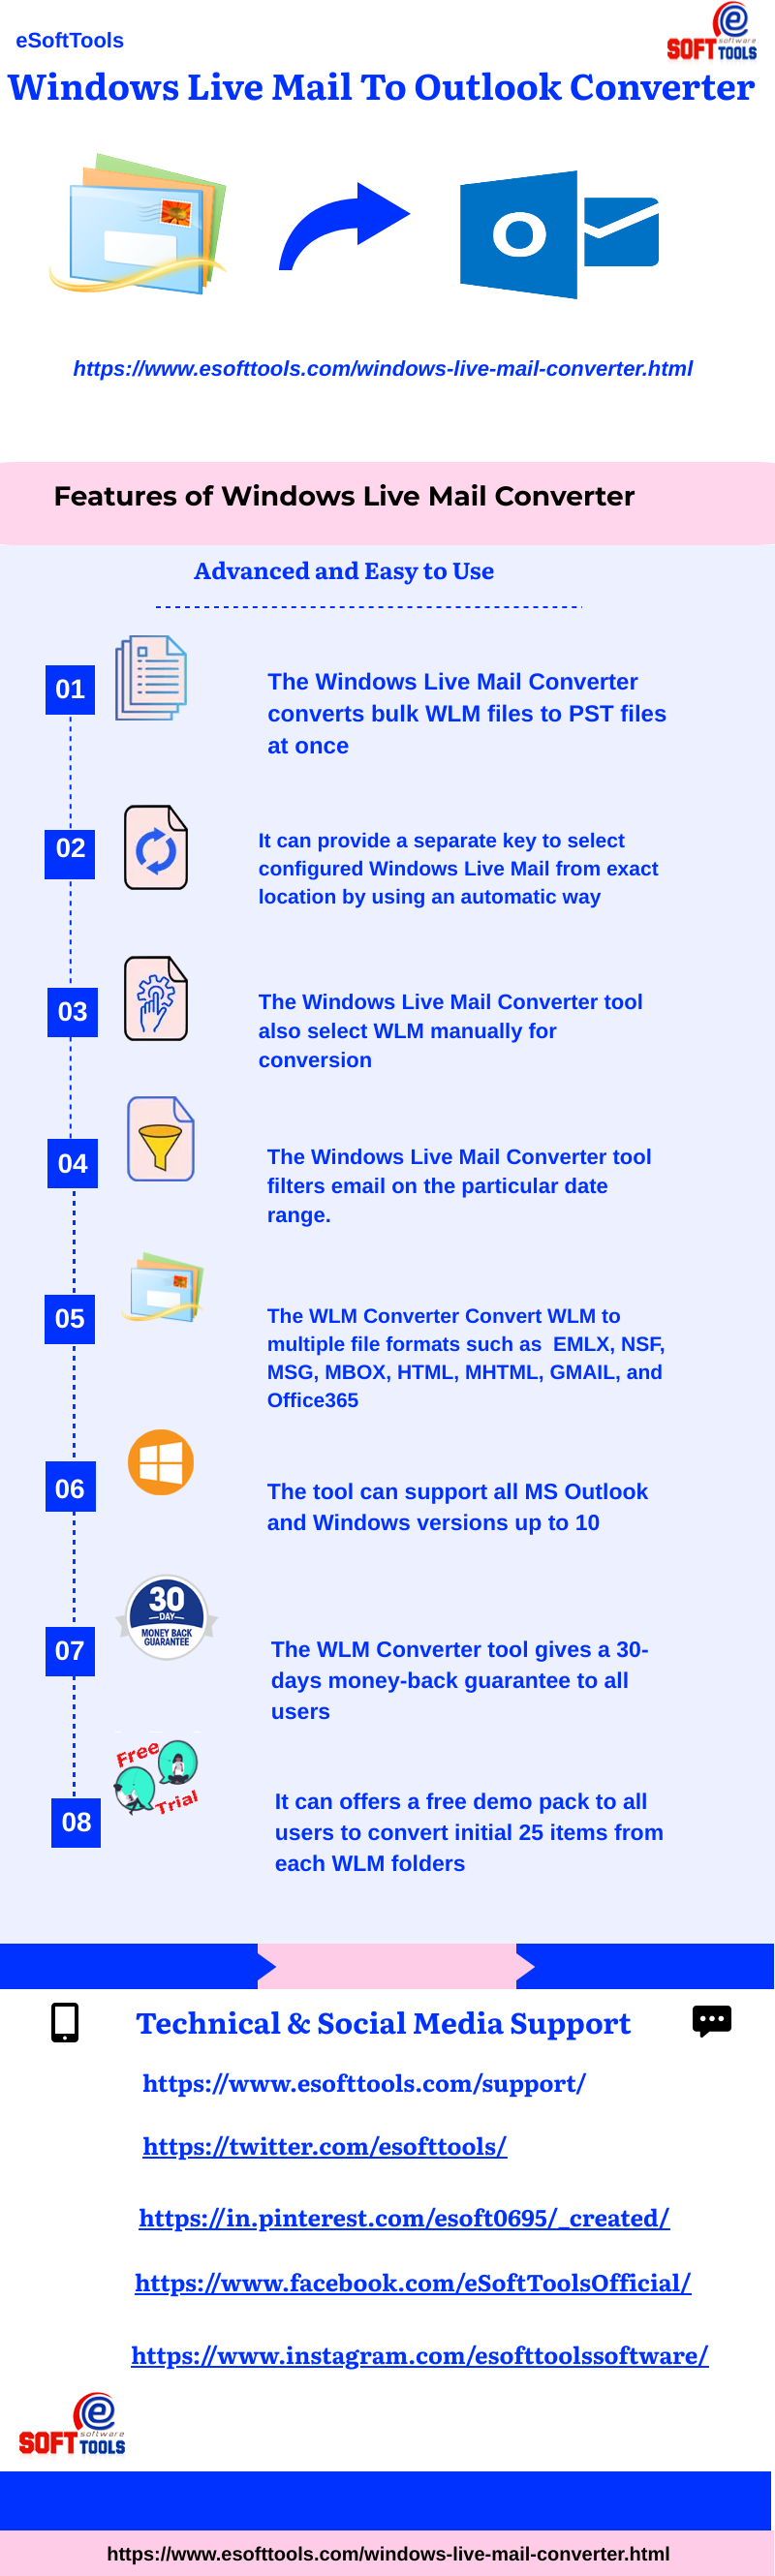 How to convert Windows Live Mail to Outlook?